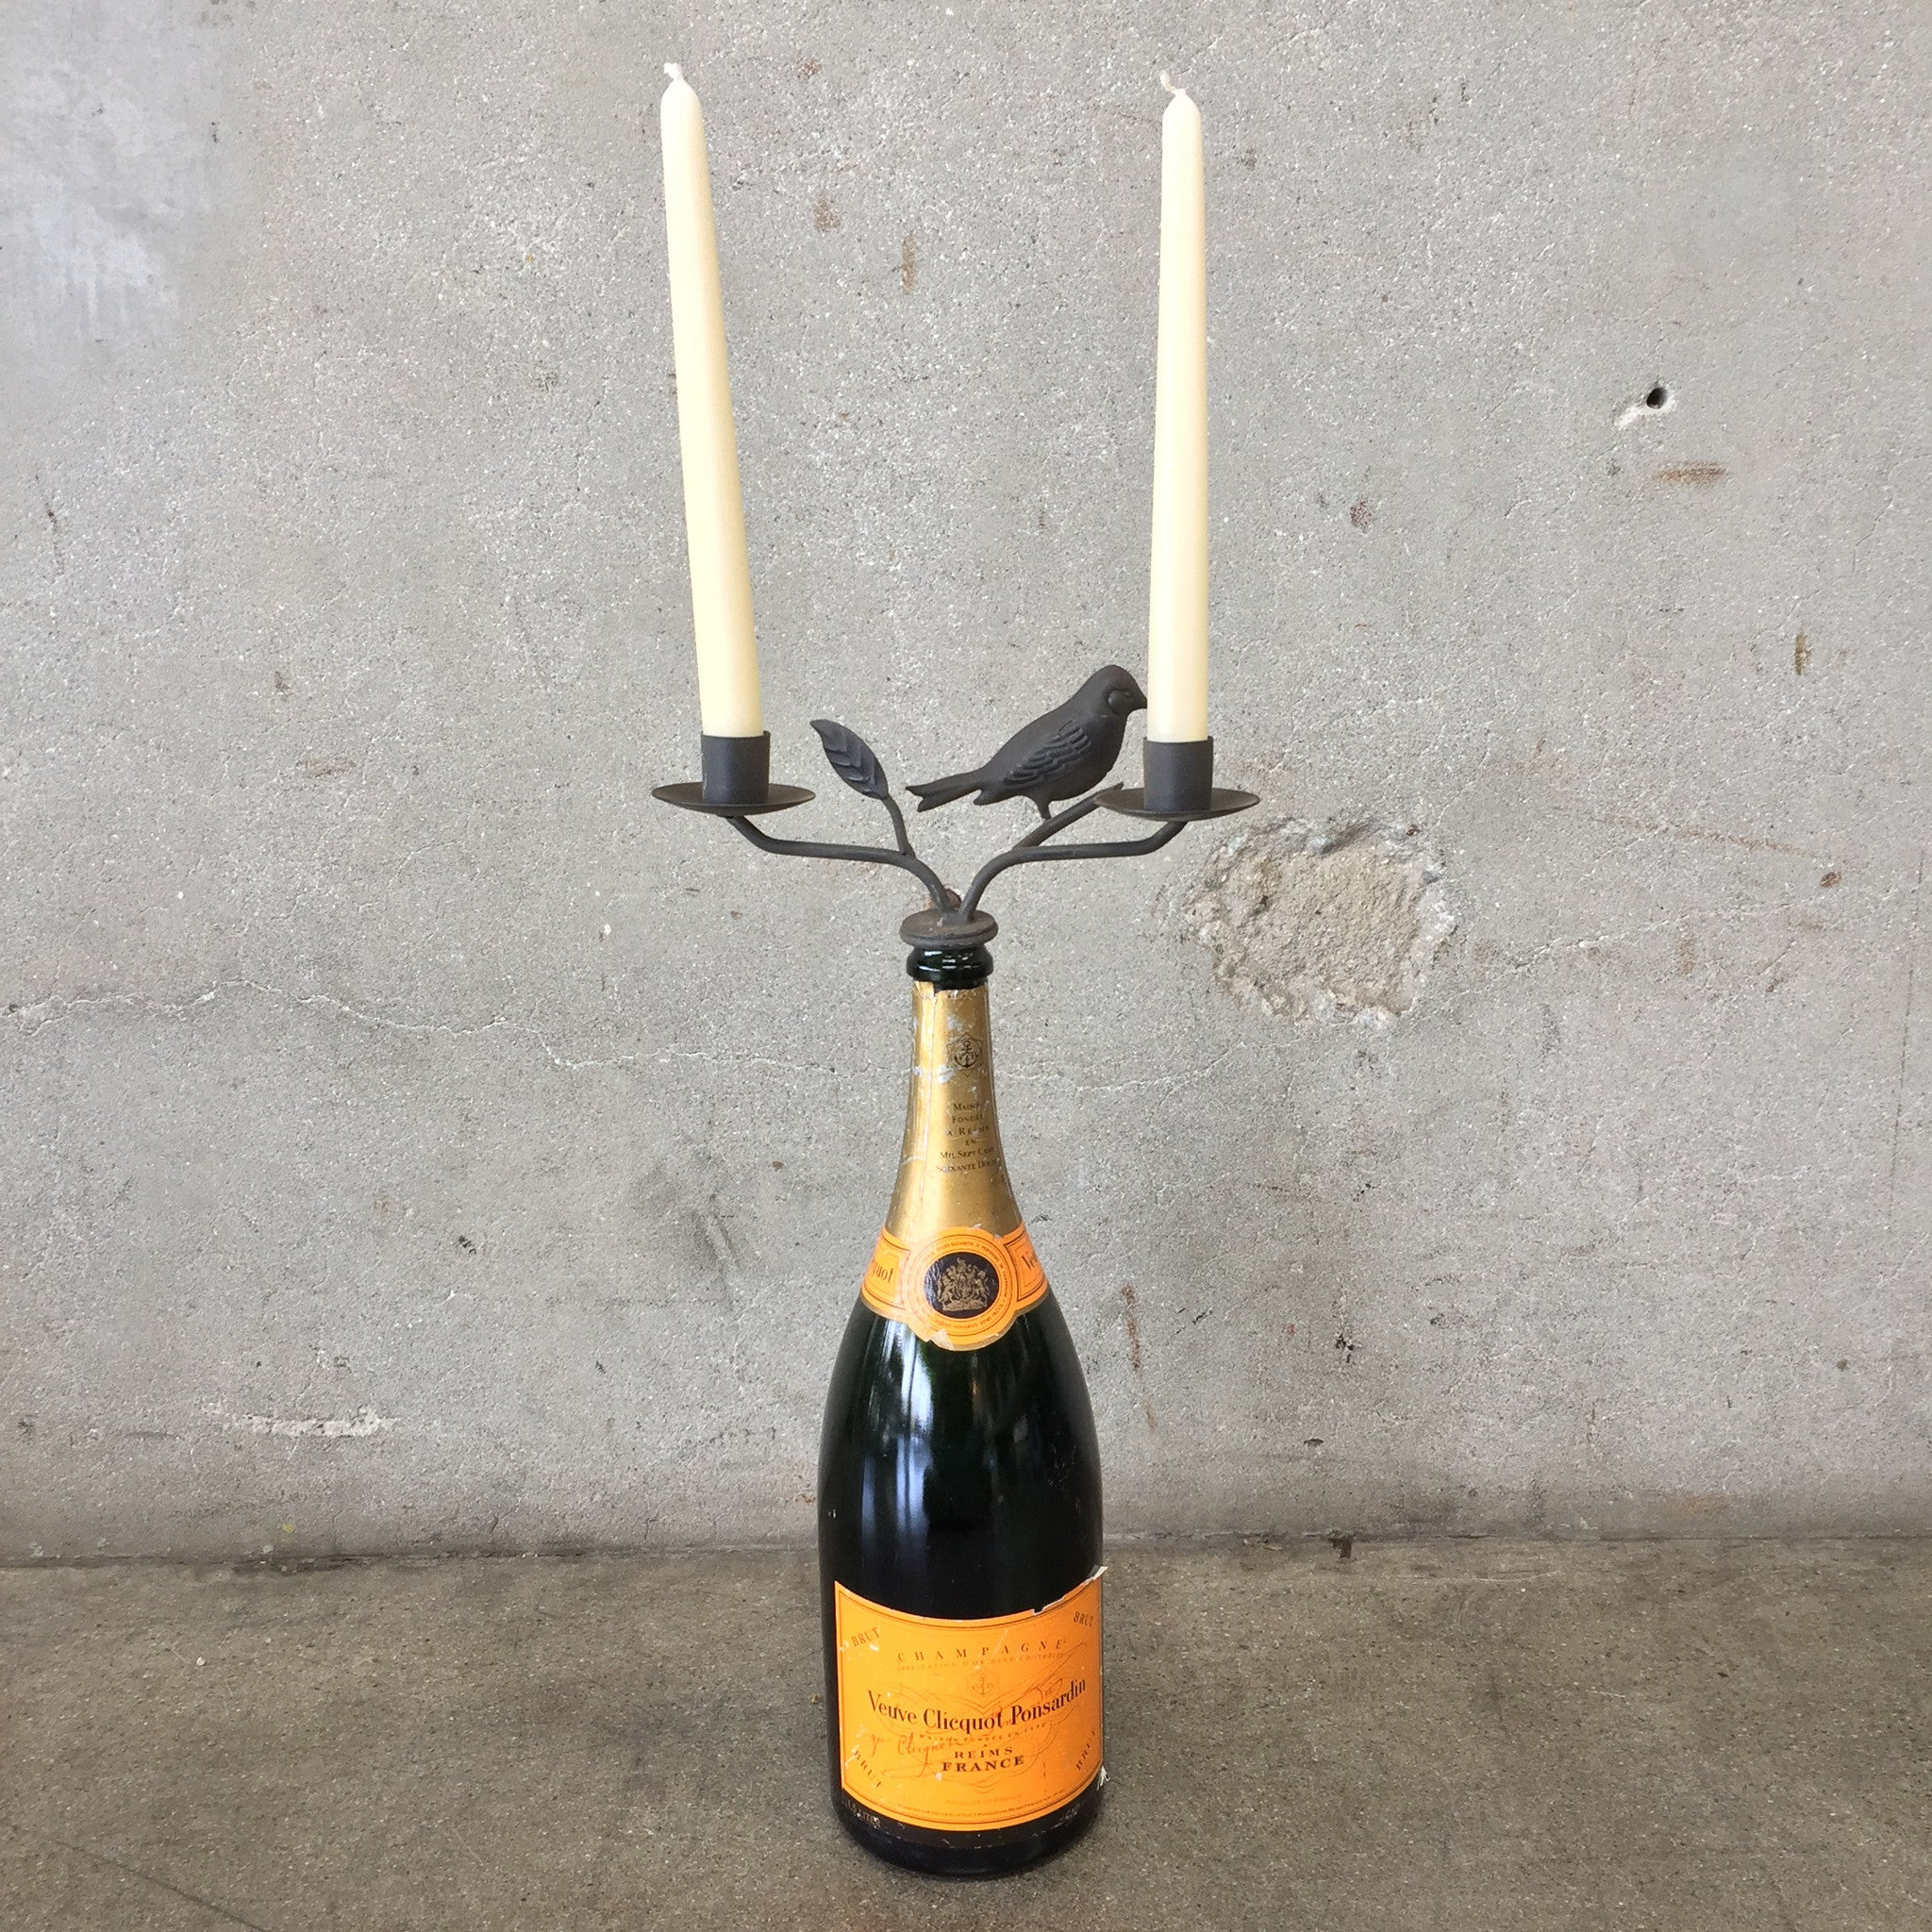 Vintage champagne bottle holder with candle holder for Champagne bottle candle holders